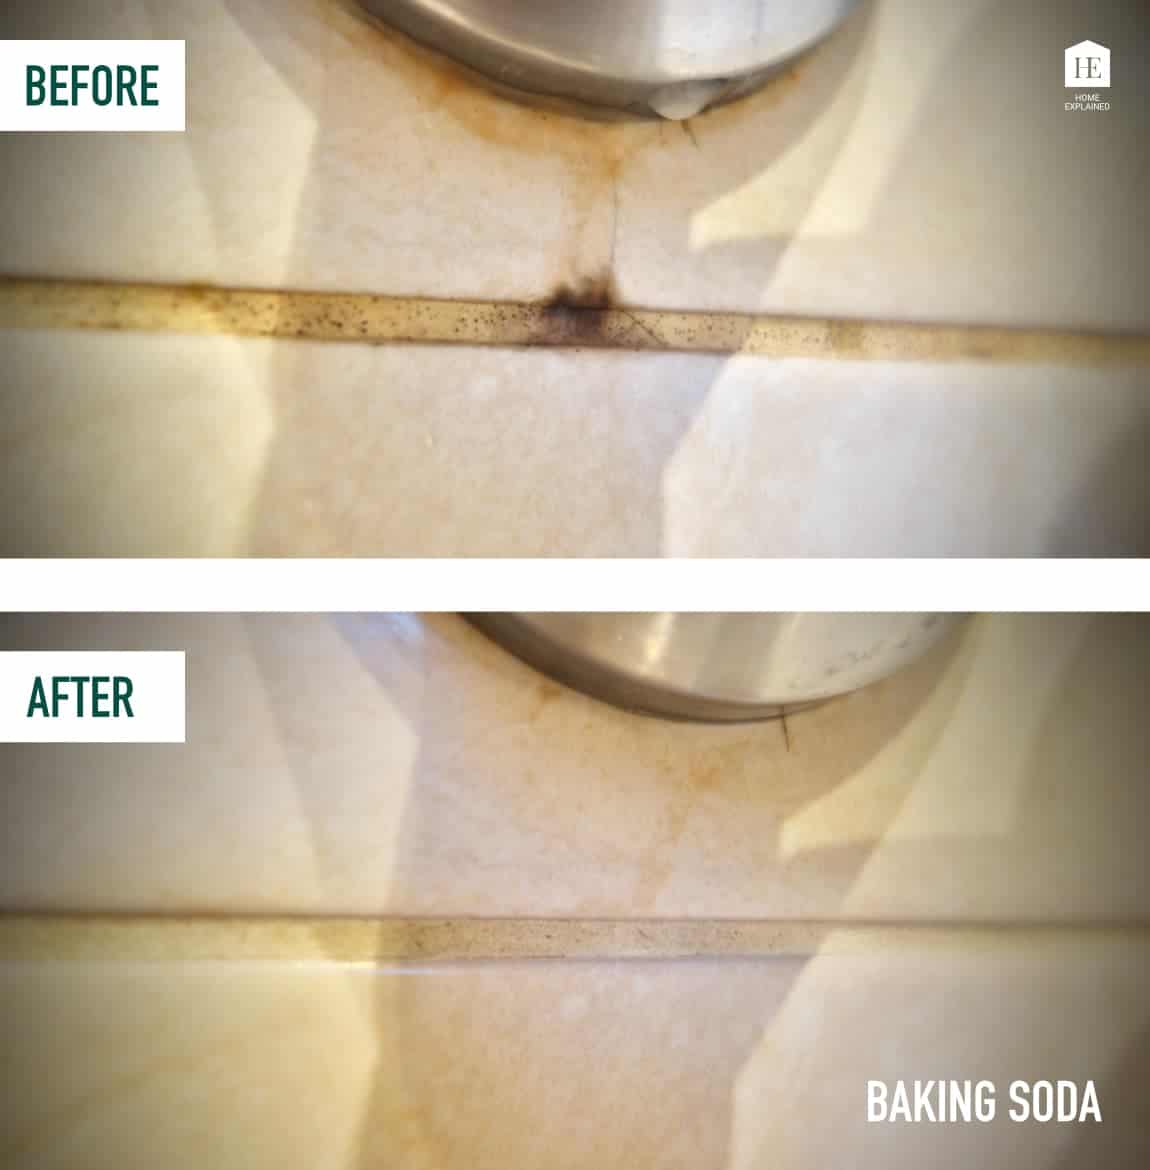 Getting rid of black mold from shower grout naturally with baking soda mix   HomeExplained.com